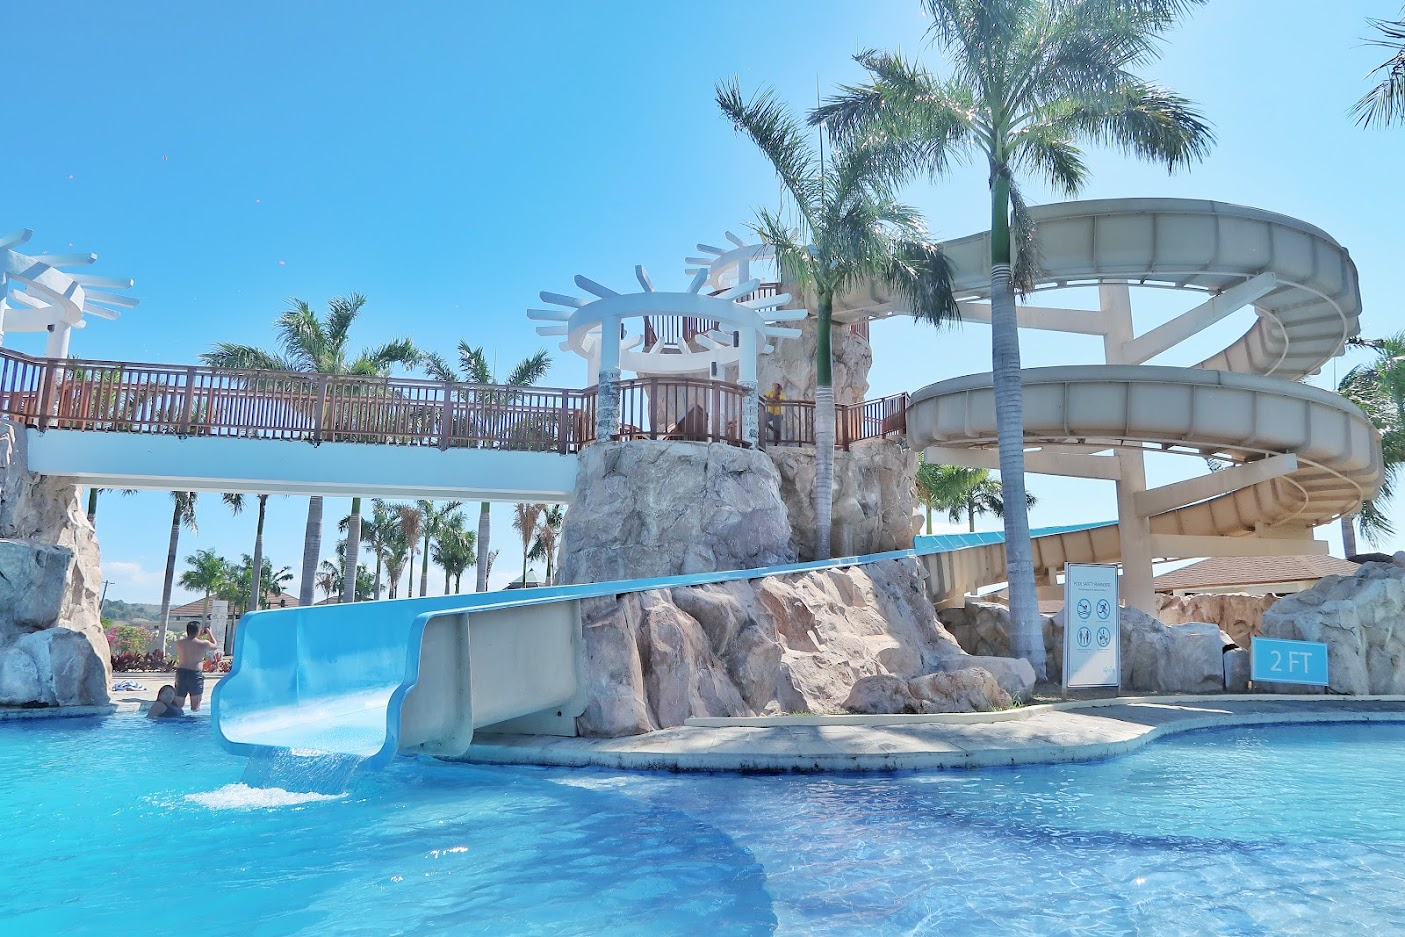 Aquaria Water Park Beach and Pool Getaway in Batangas 07